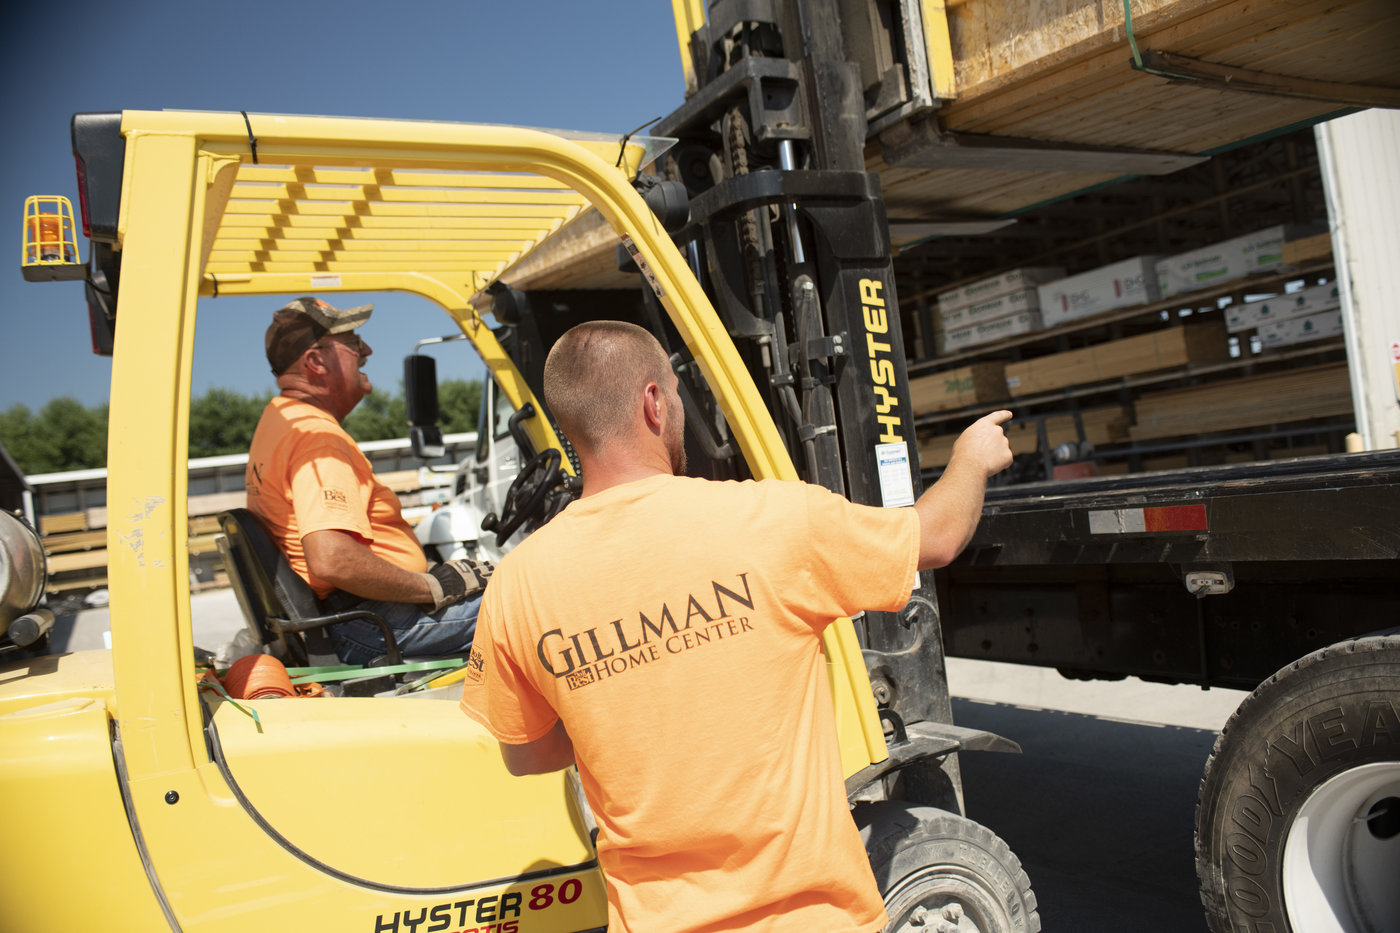 Gillman Home Centers, which gets about two-thirds of sales from pros, sells everything needed for the home from lumber and cabinets to flooring and mattresses.